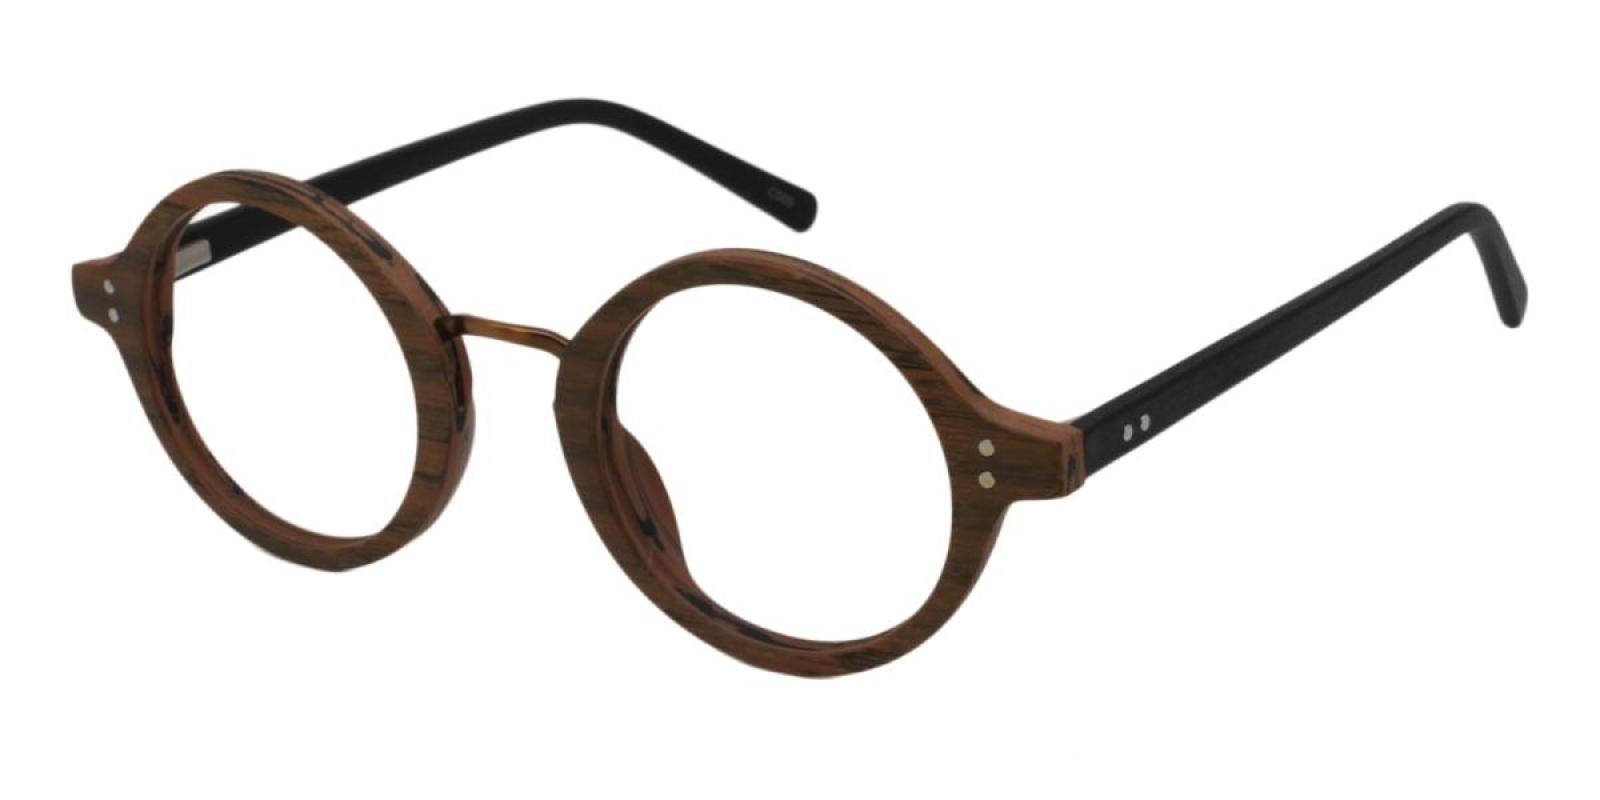 Woodiness-Brown-Round-Acetate-Eyeglasses-additional1